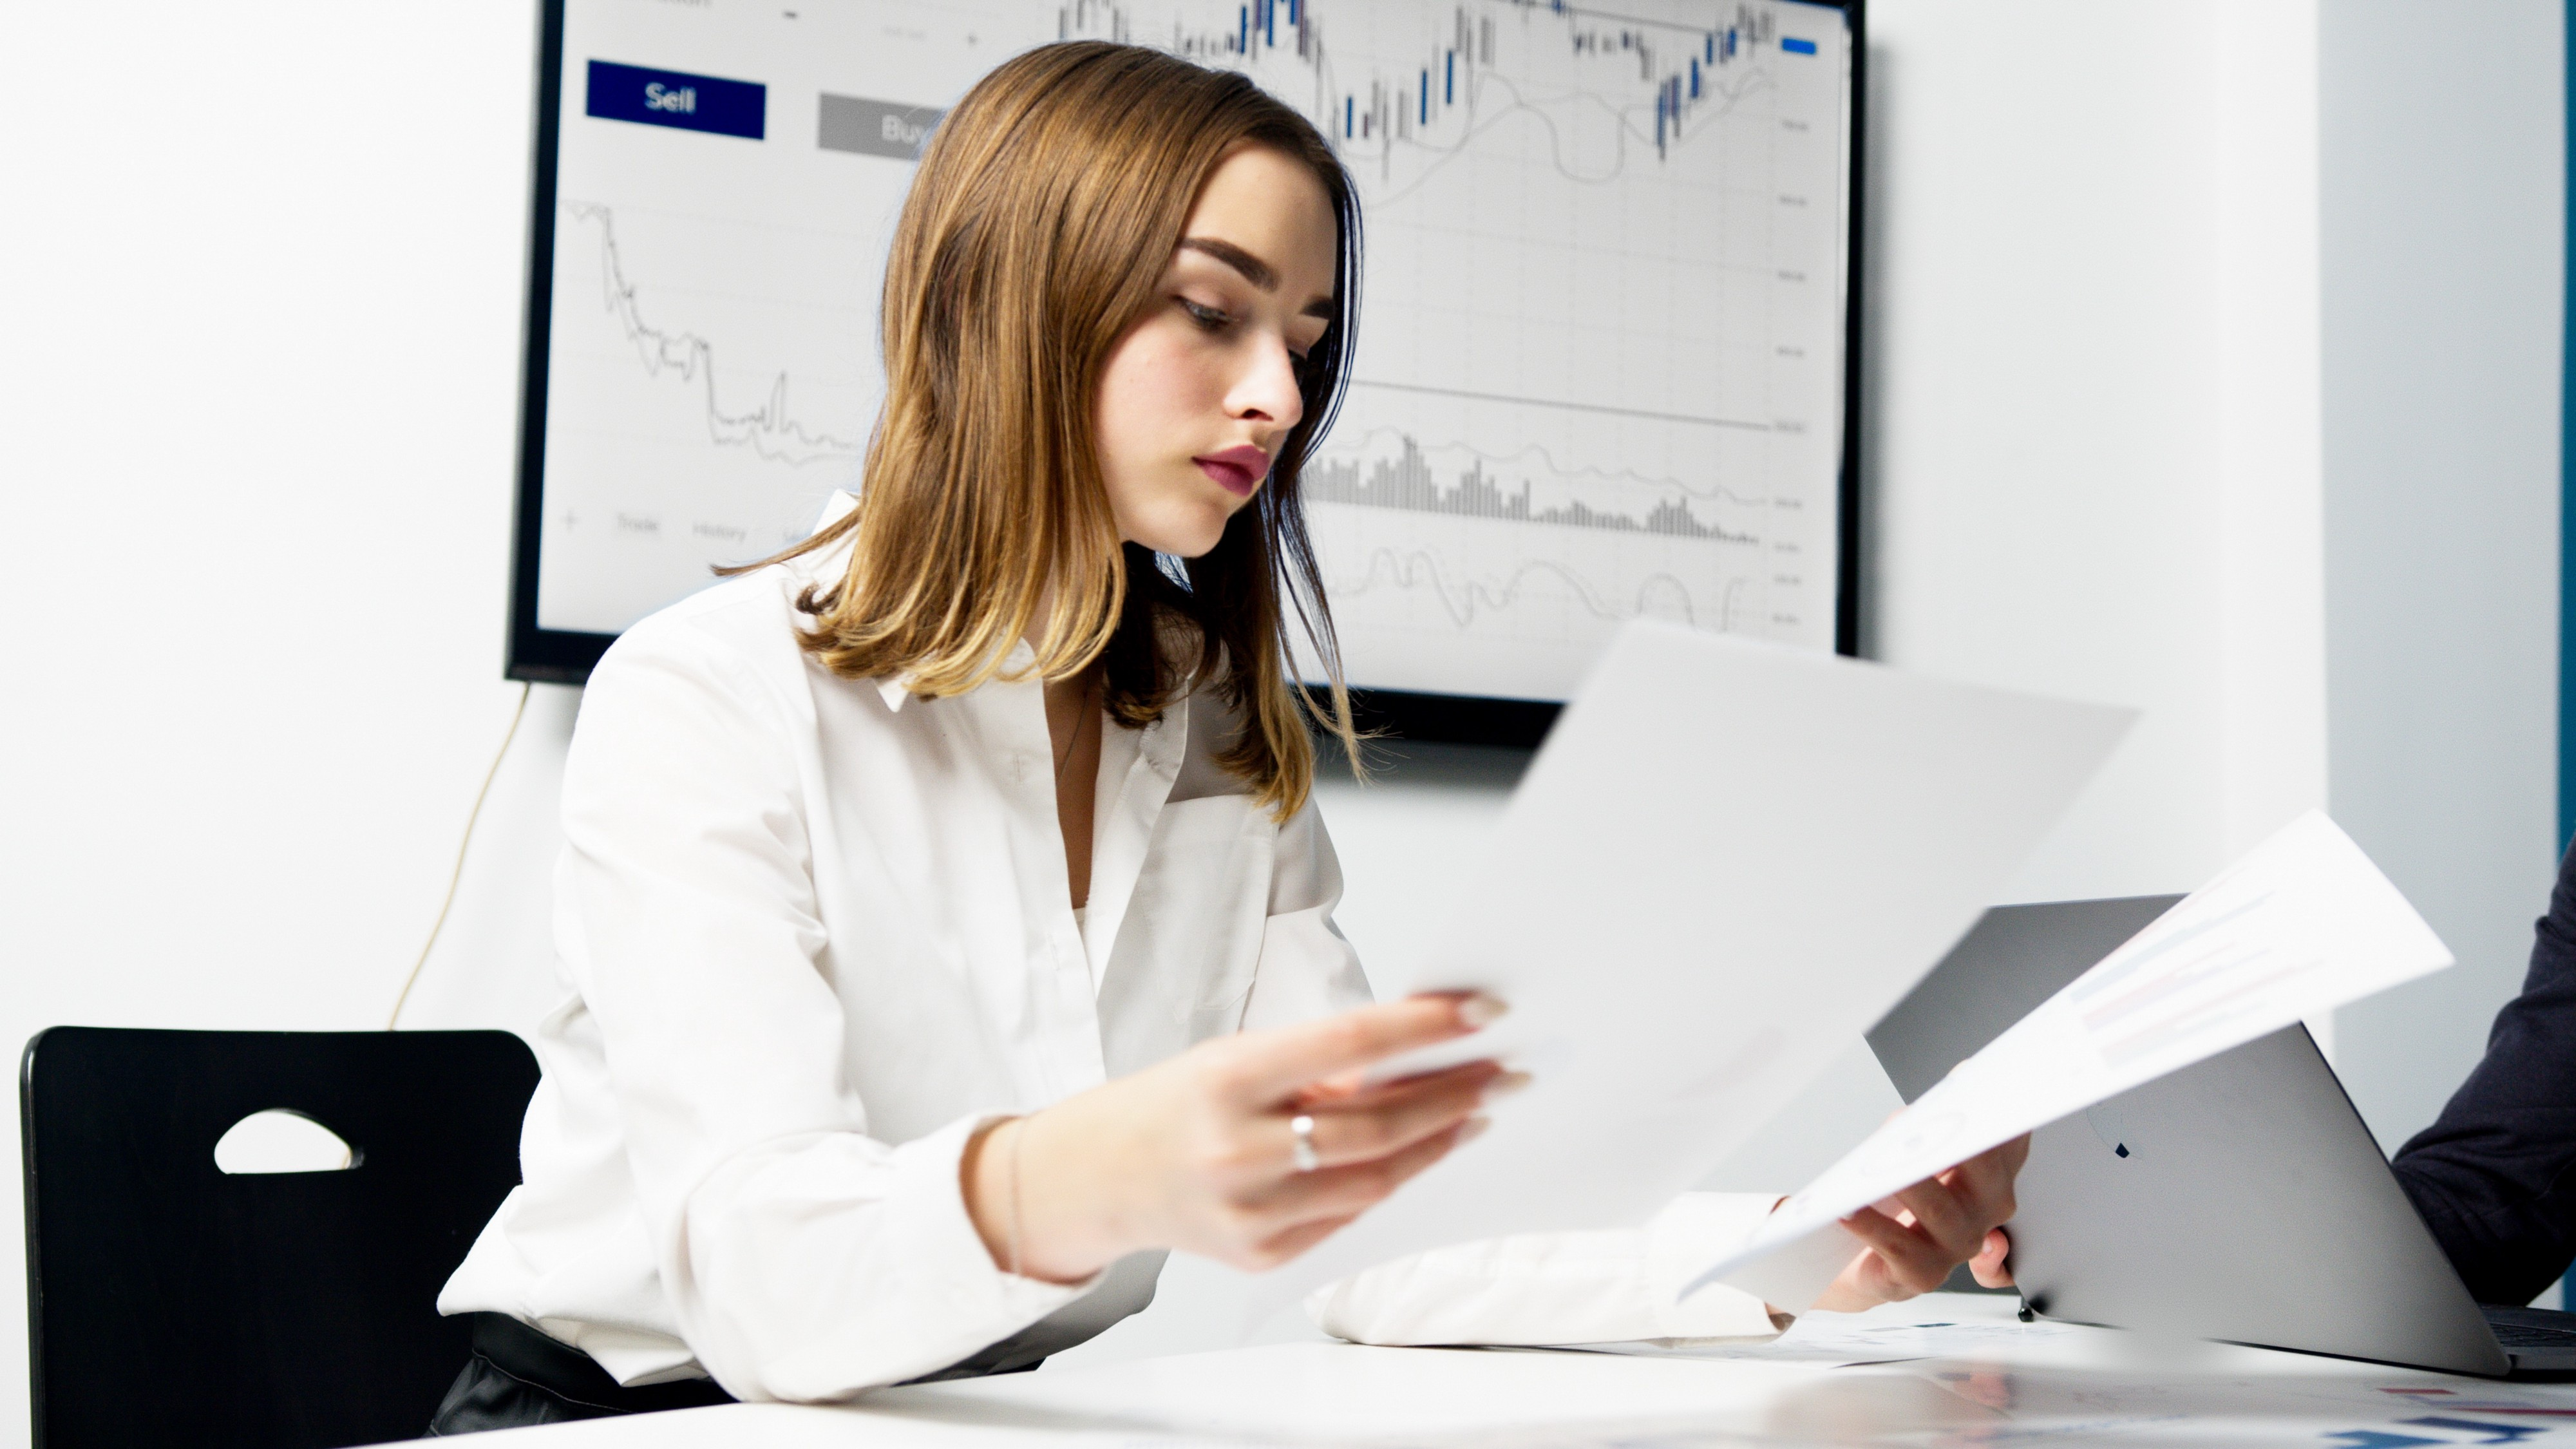 Woman analyzing papers with stock market chart behind her